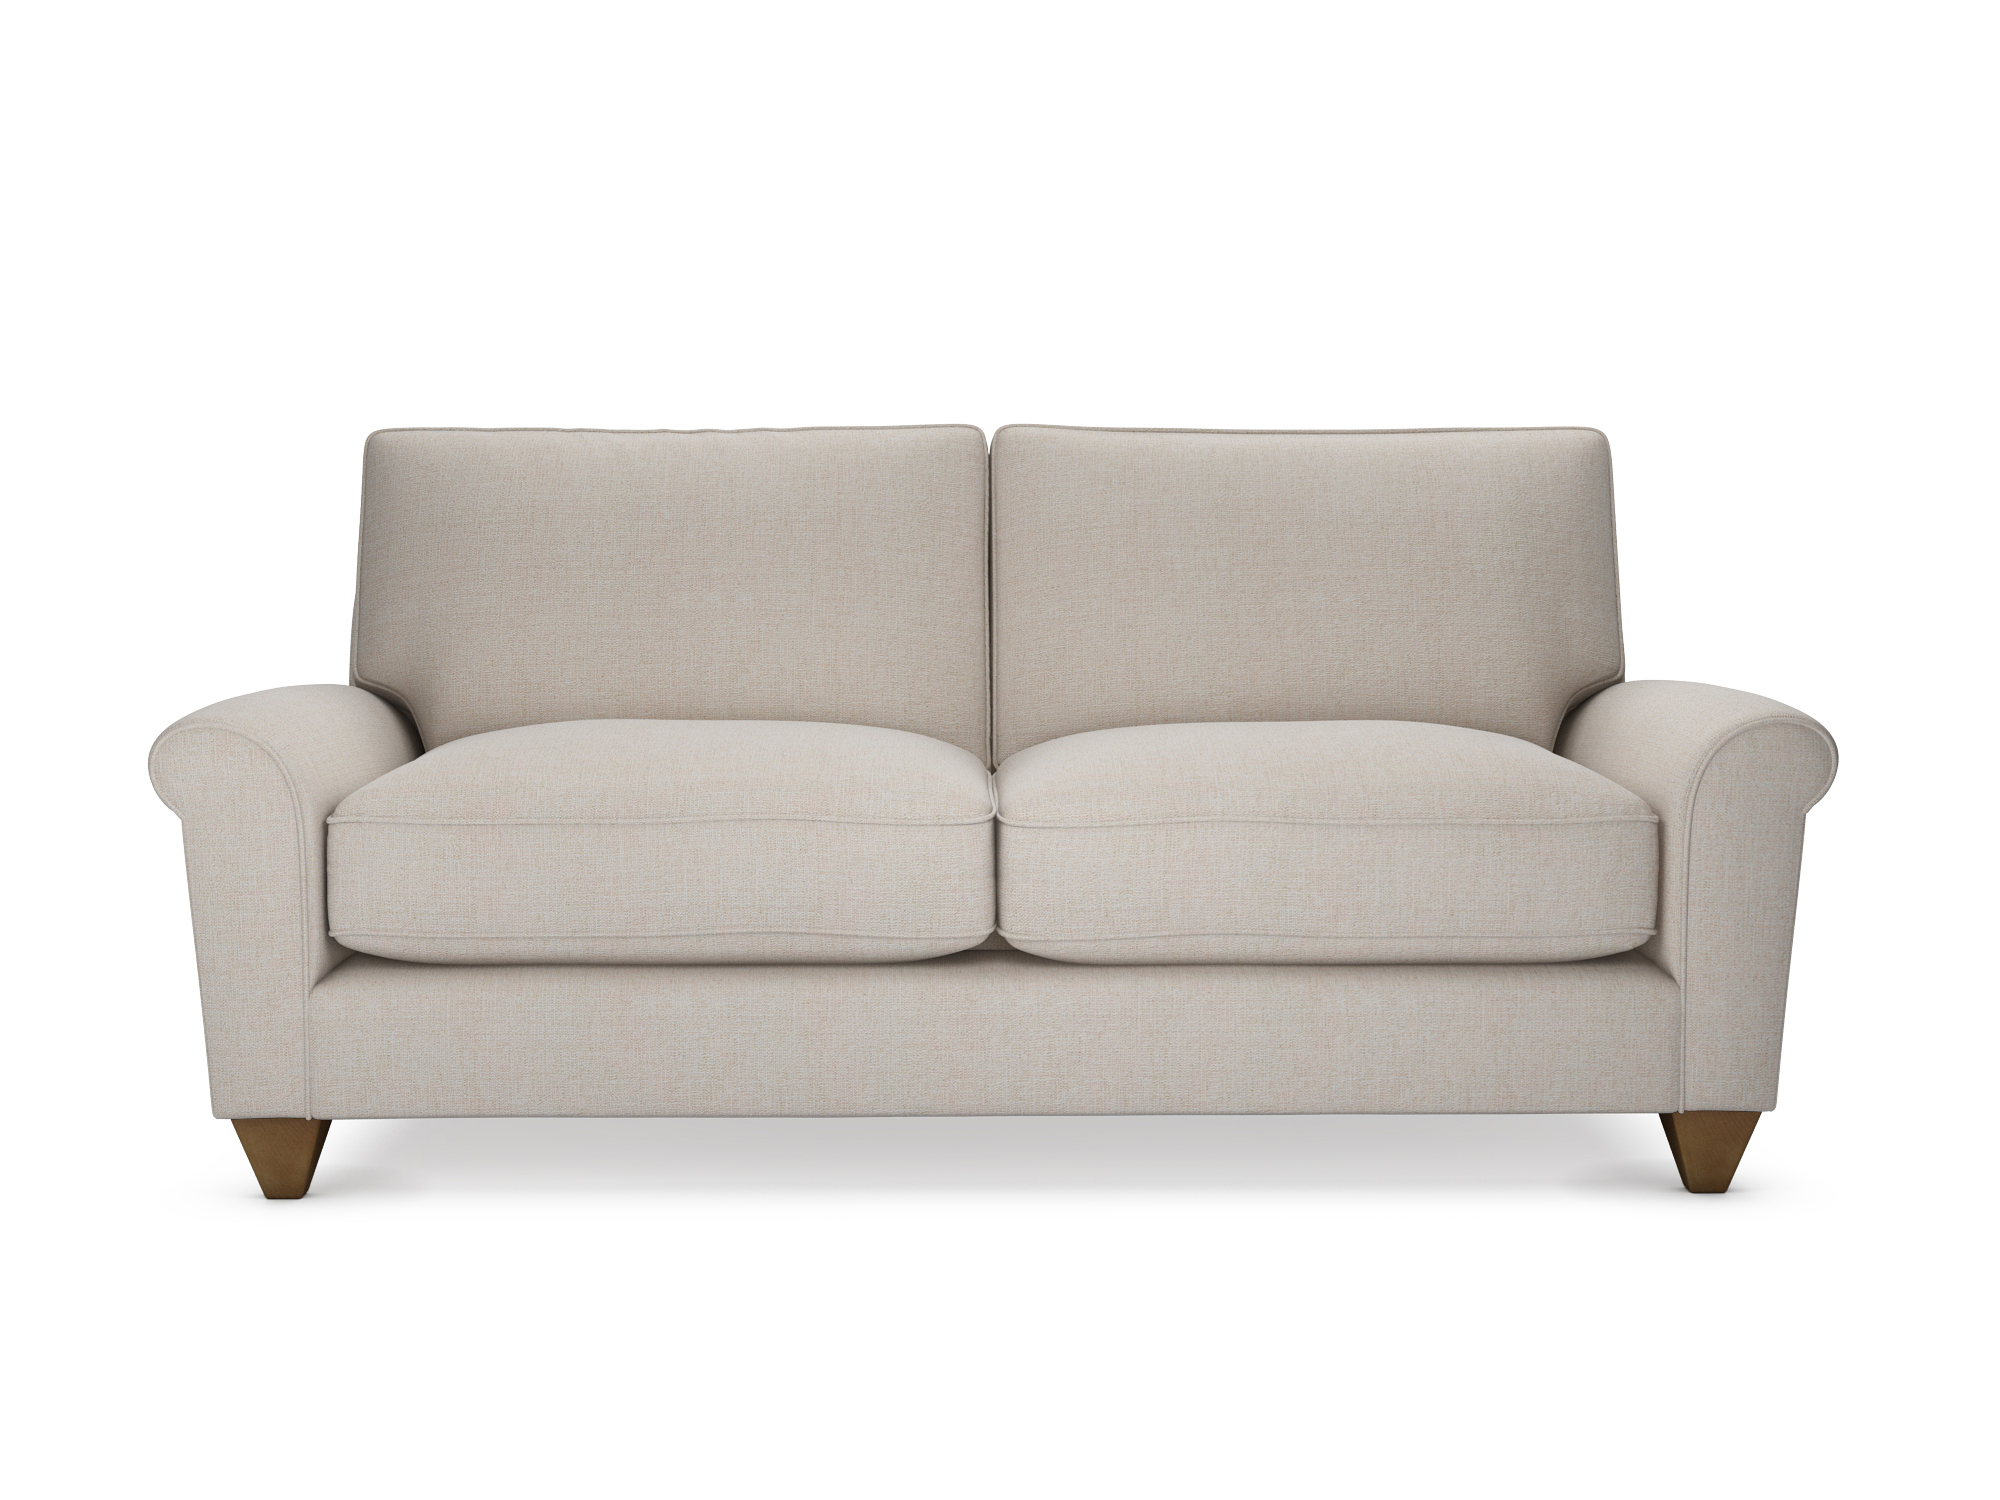 Chloe Neutral Sofa